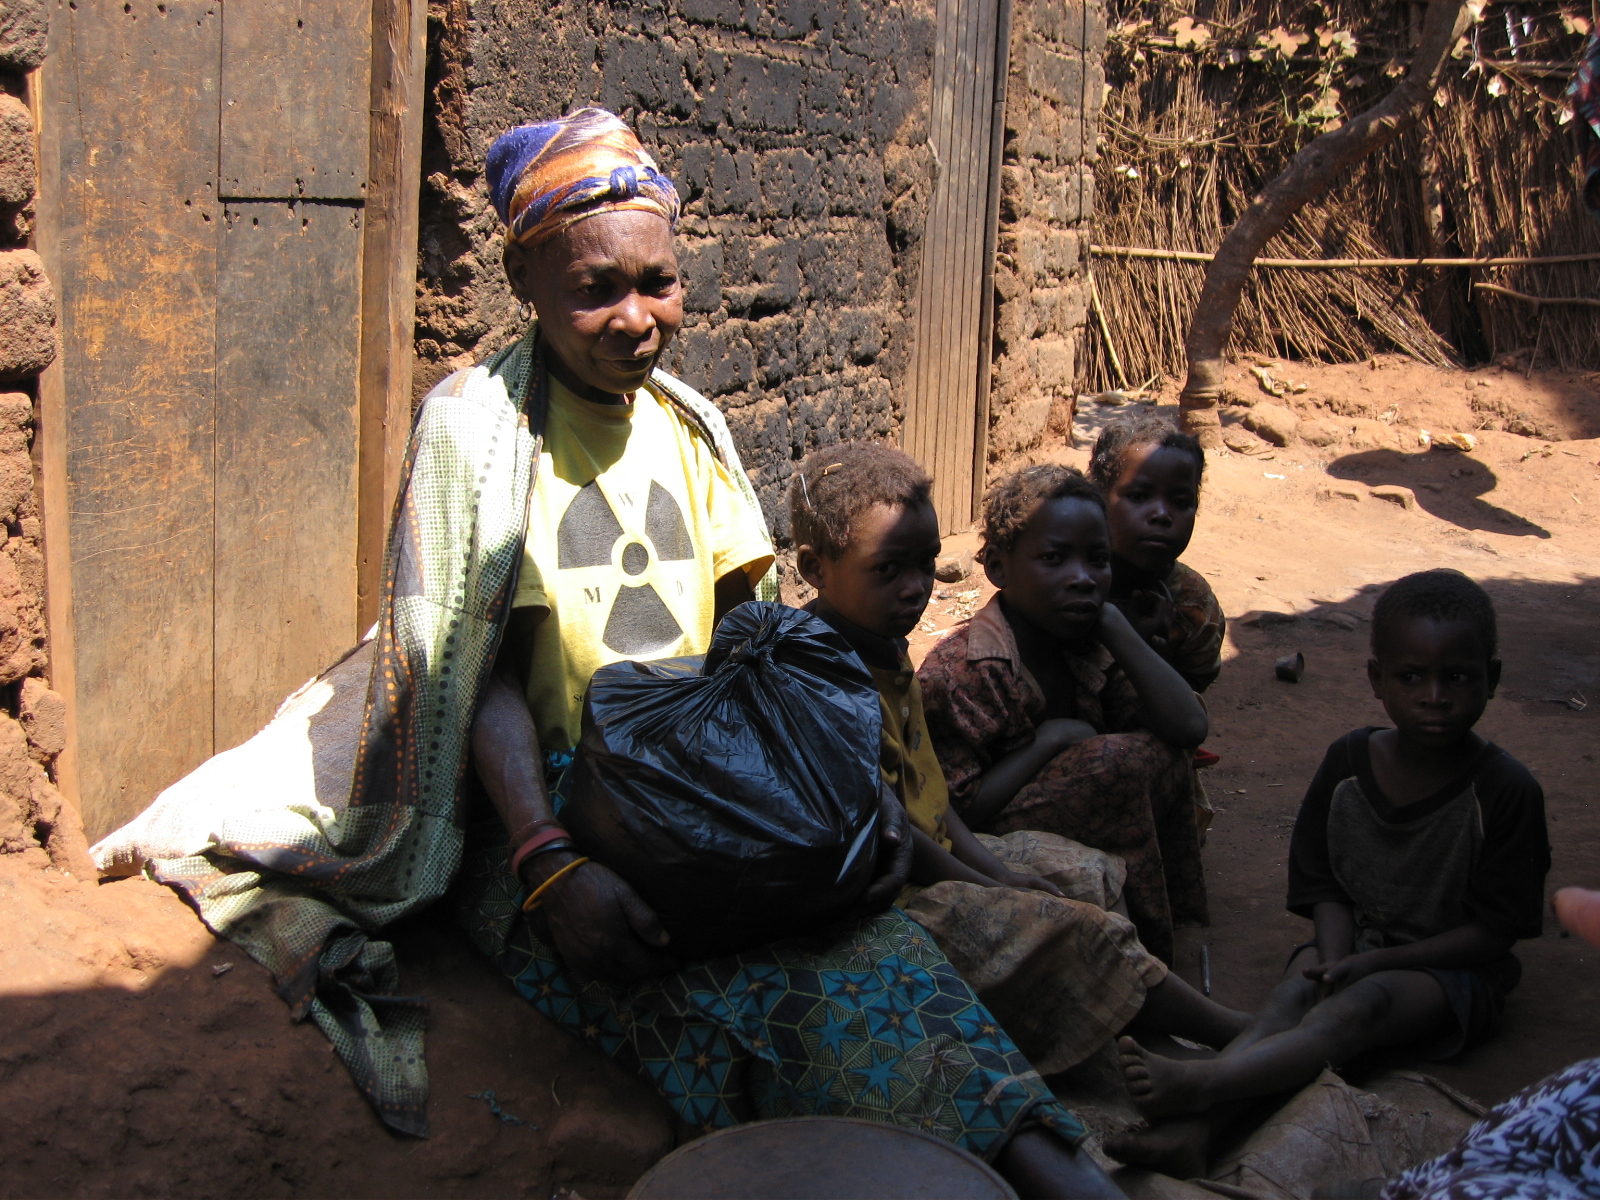 Older African woman sitting on the ground surrounded by four young children.